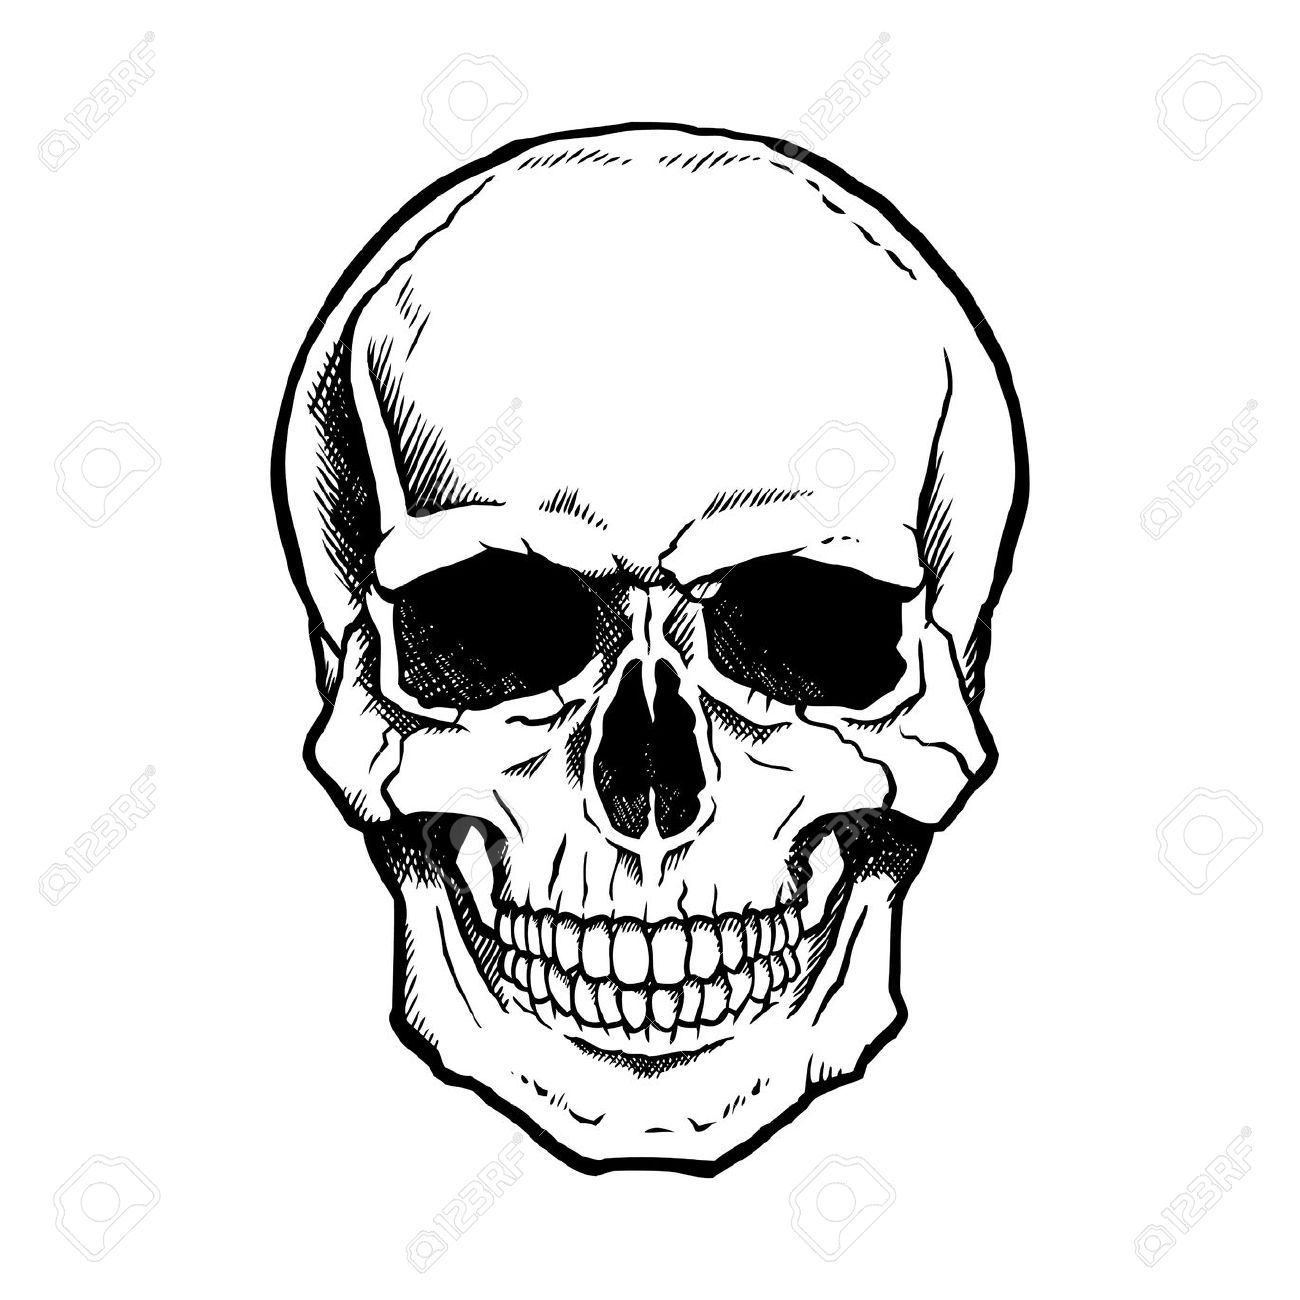 skeleton head drawing - Google Search | Halloween | Skull ...